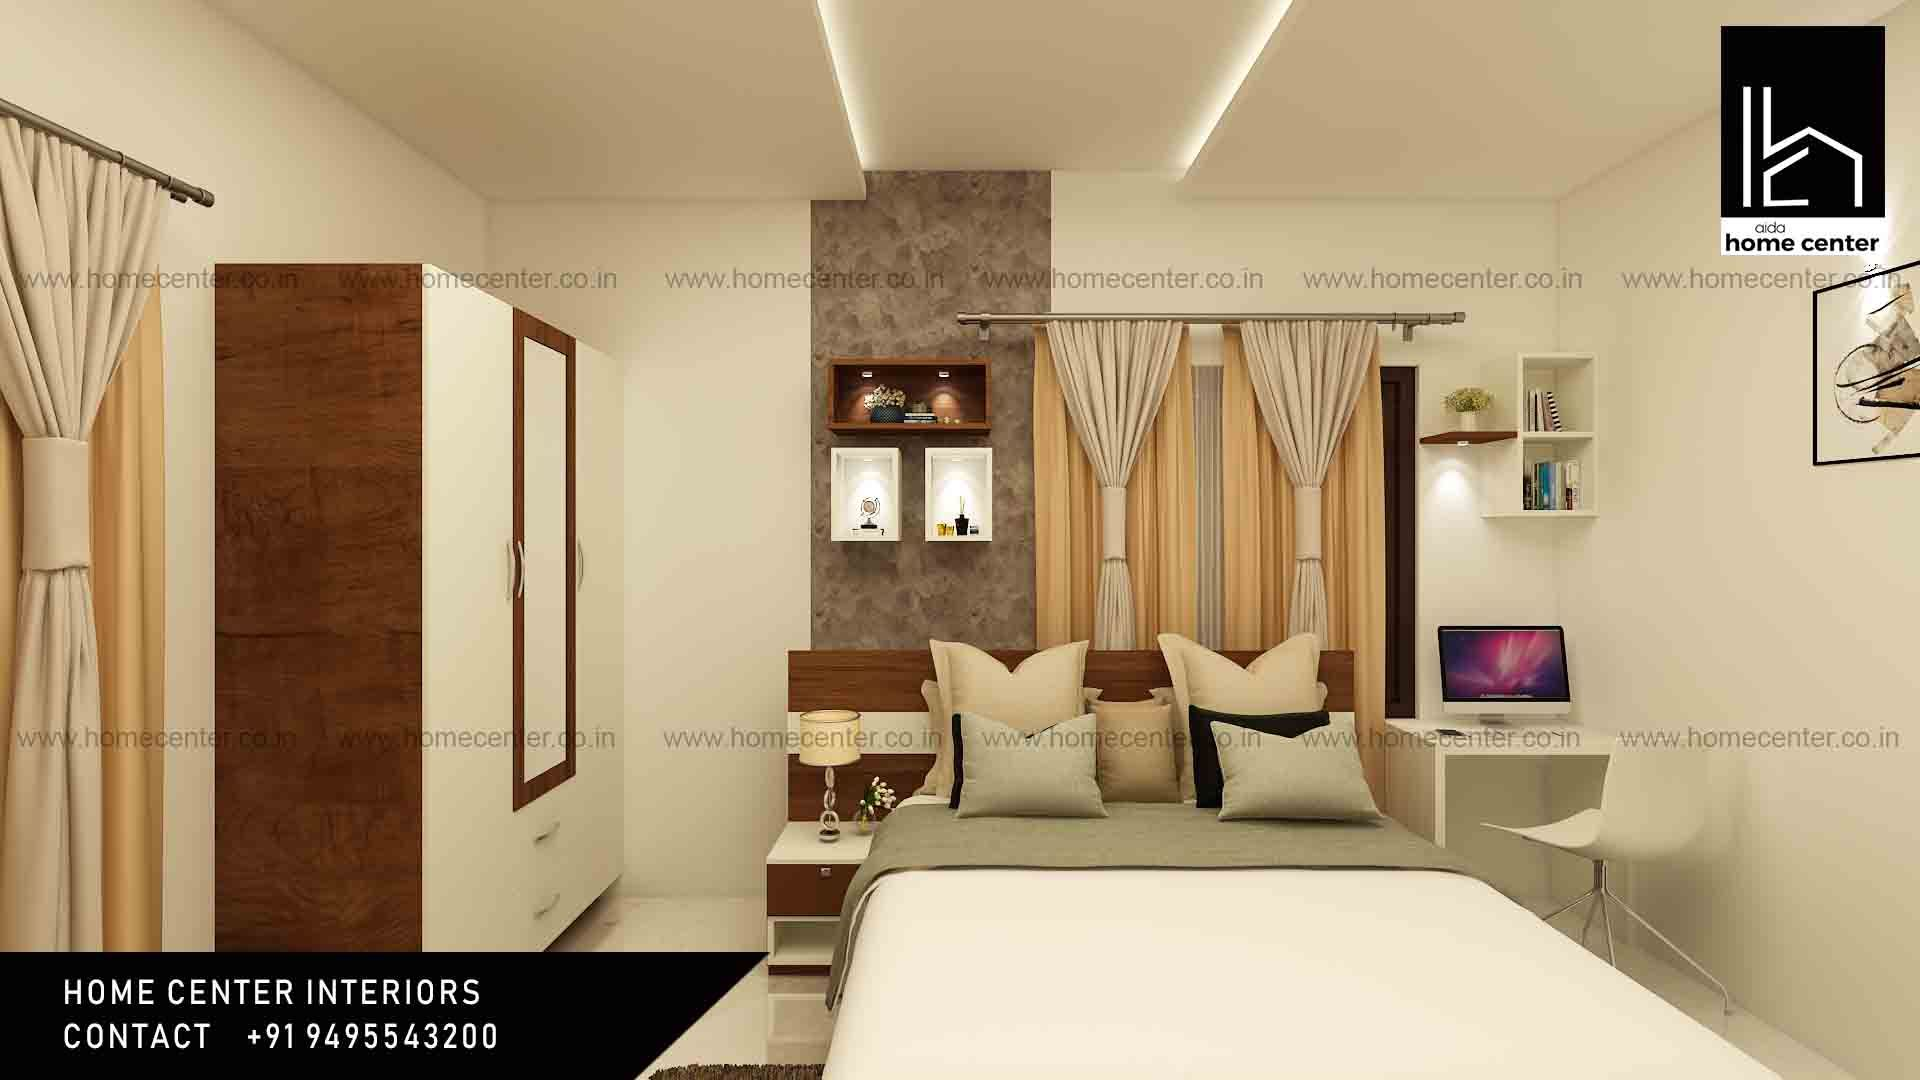 Home Center Interior Designers In Trivandrum With The Best Decorators Who Are Expertized In Interior Designing Furnish Interior Best Interior Bedroom Interior